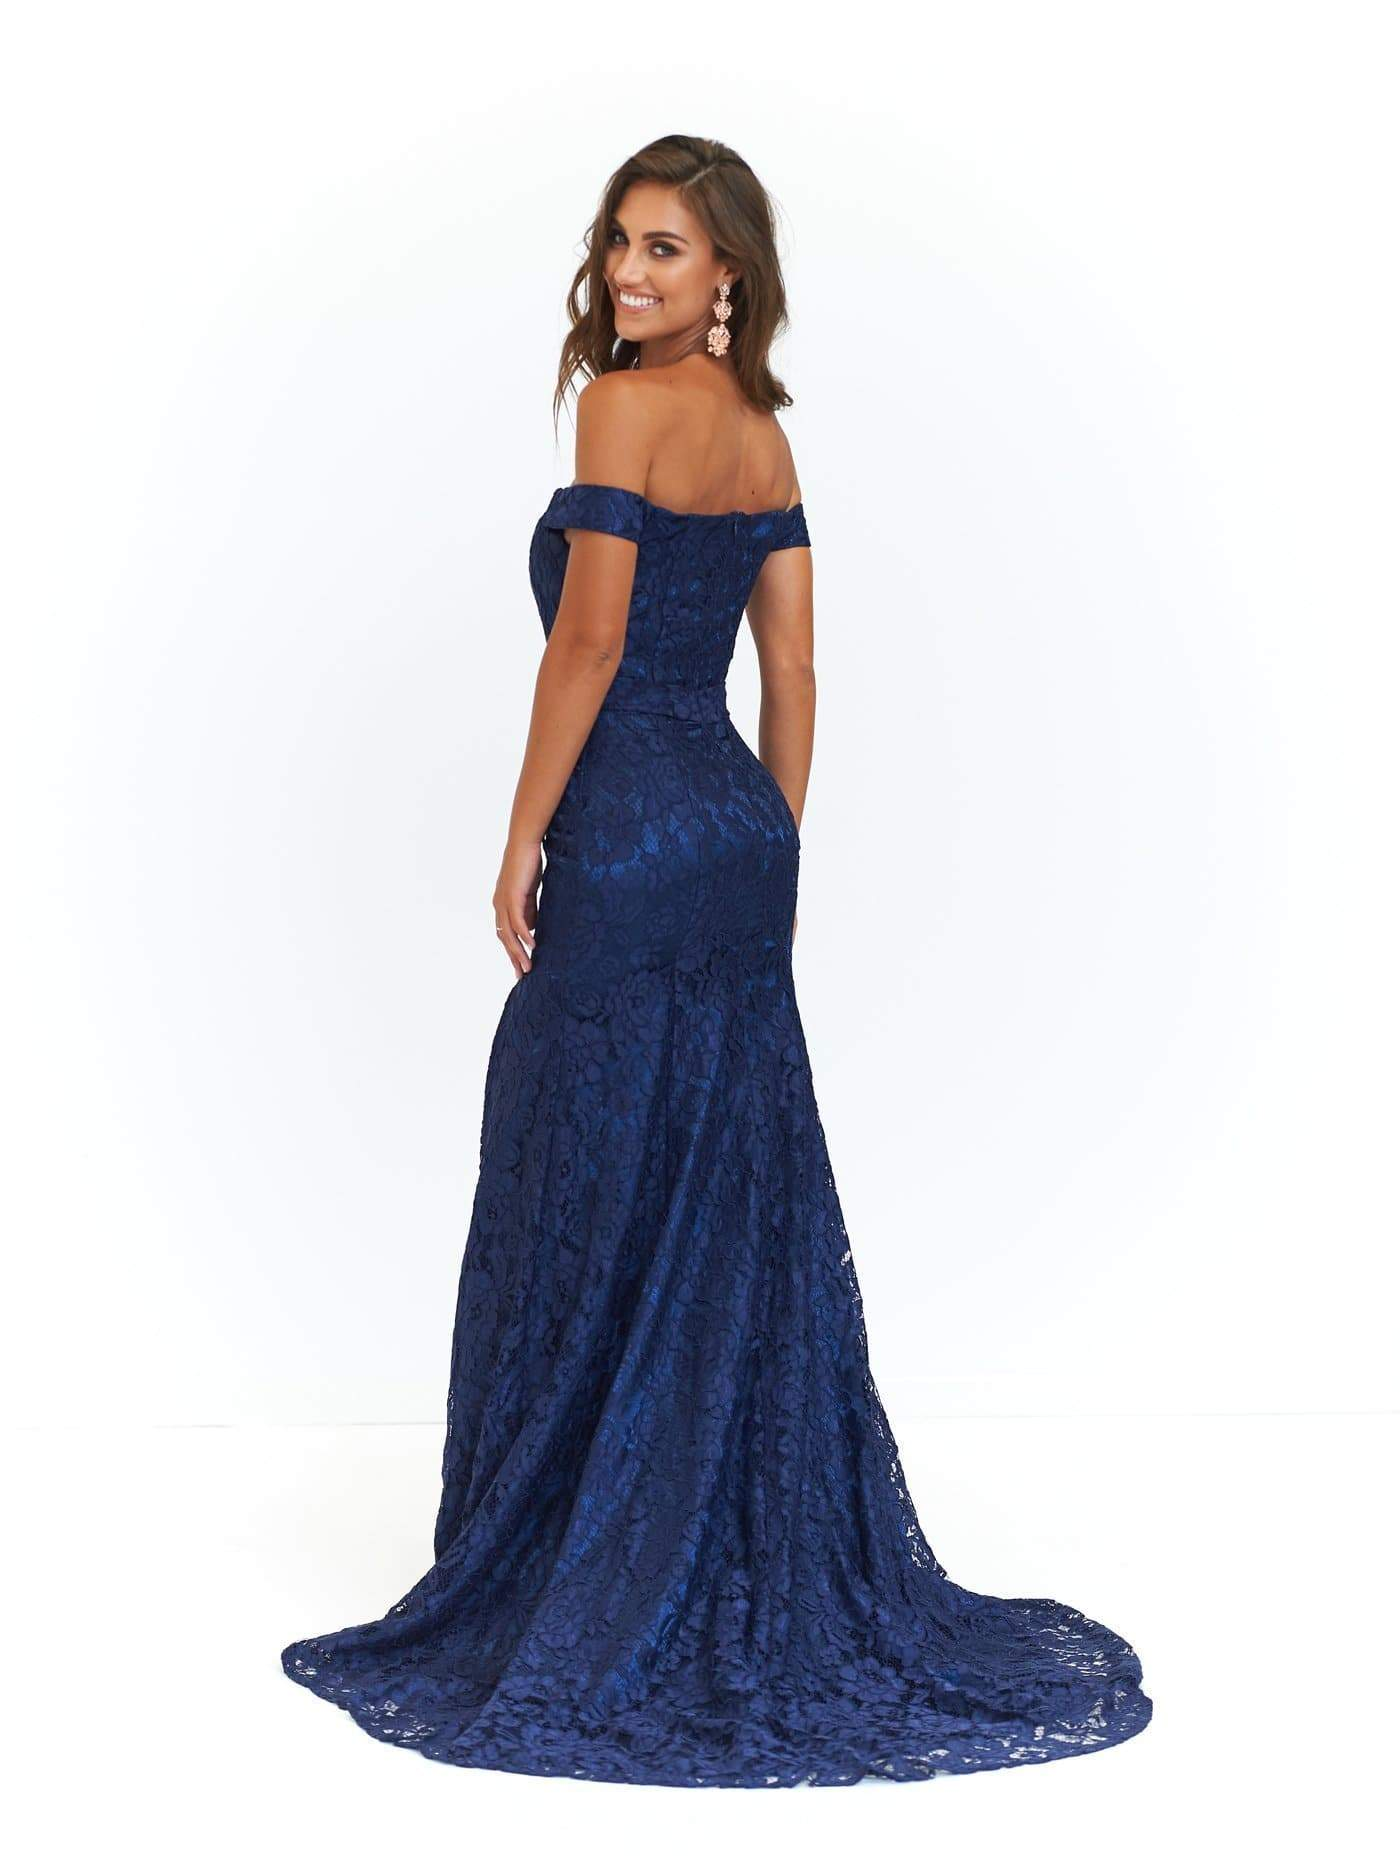 f5050dbe5db9a A&N Leyla - Navy Off-Shoulder Lace Gown with Side Slit – A&N Luxe Label